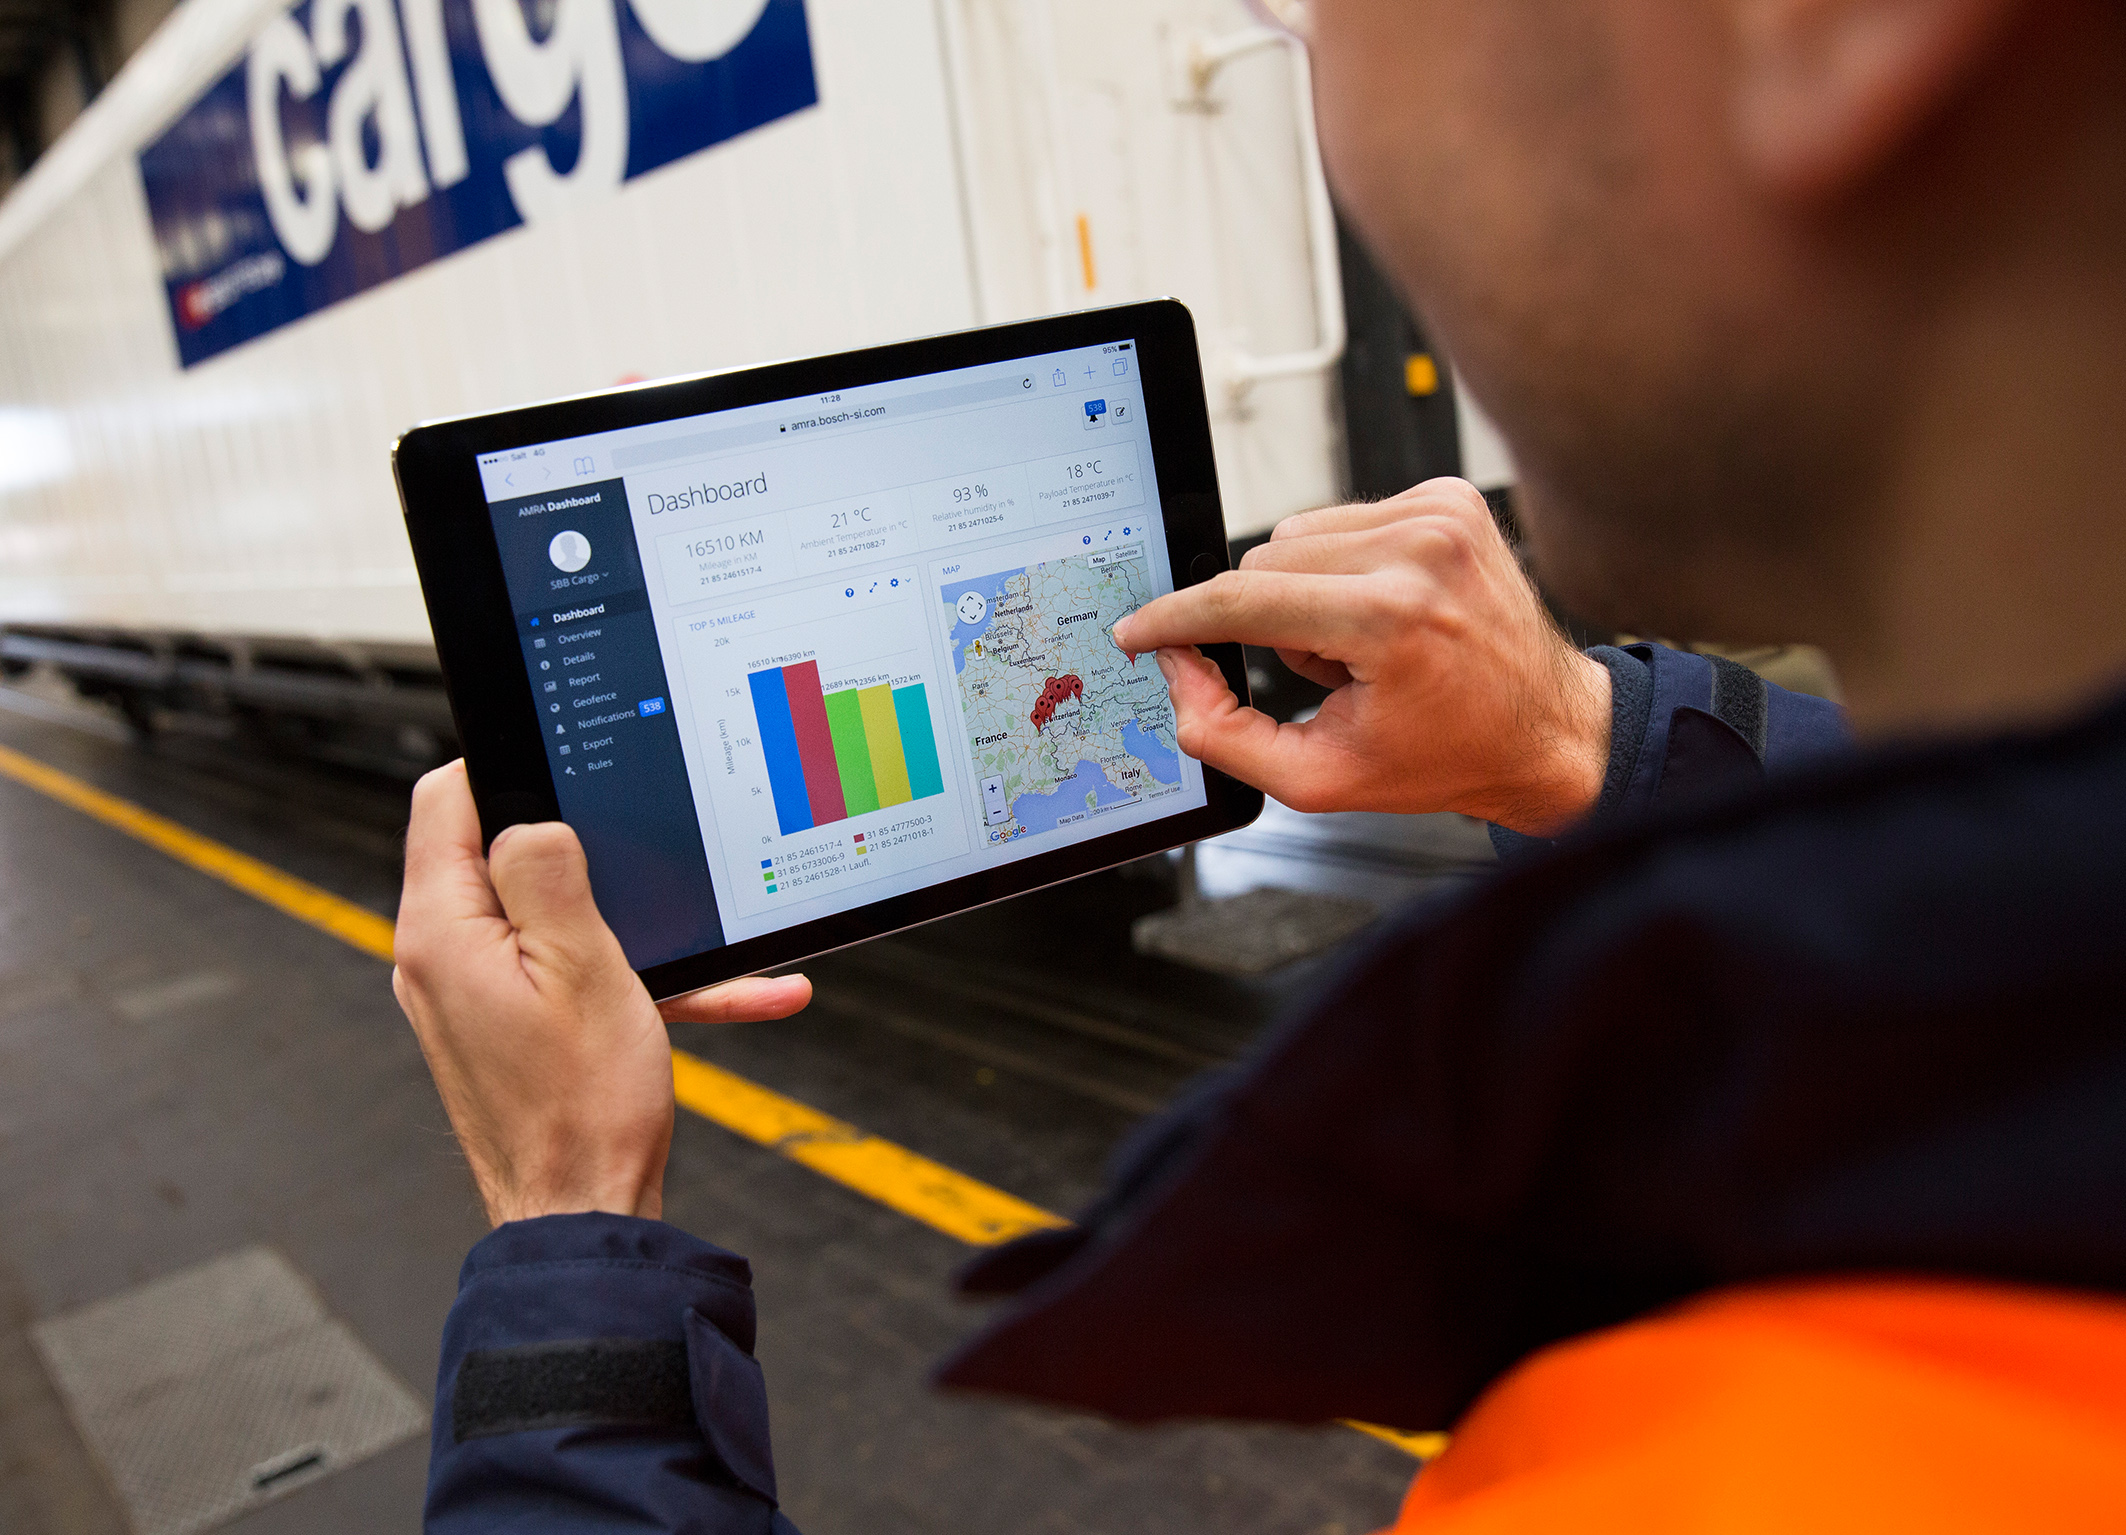 Connected technology for efficient logistics